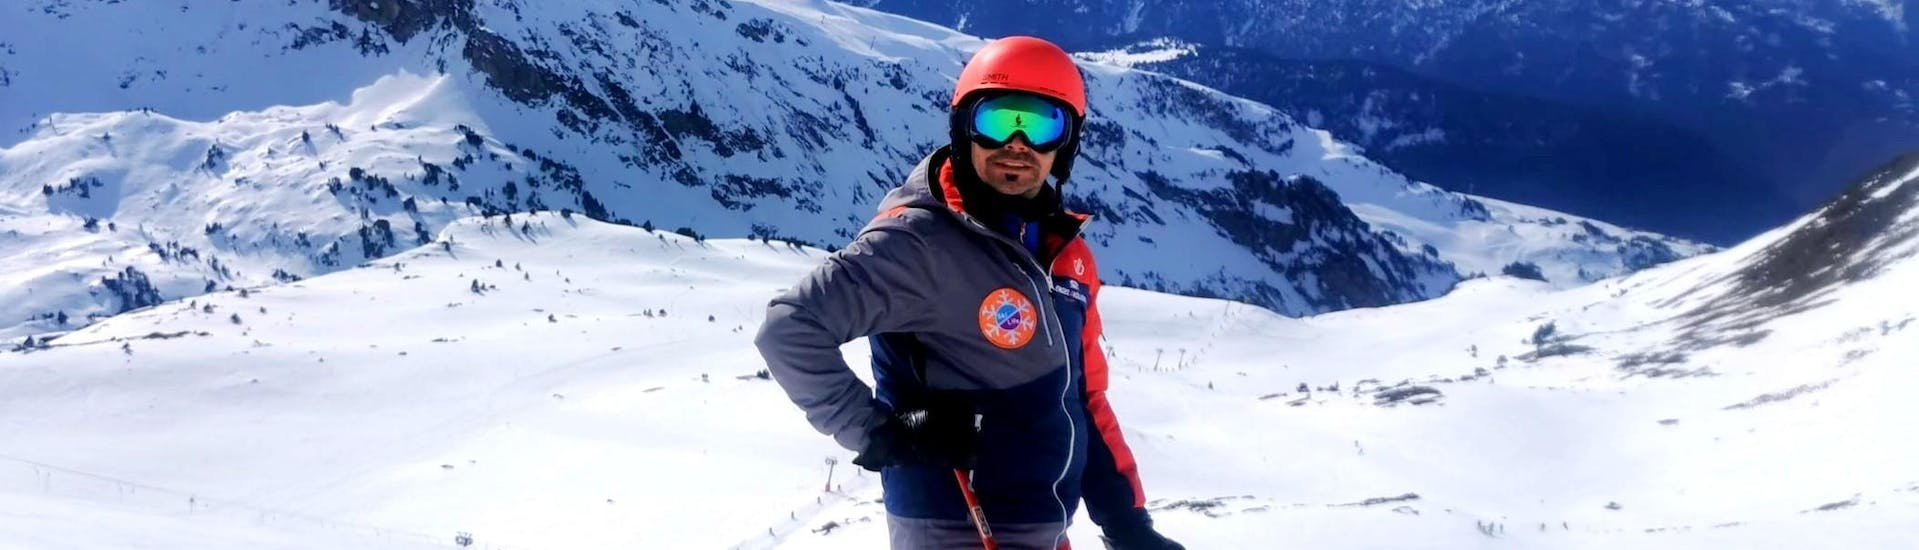 A man enjoys the beautiful views of the mountains during the Private Ski Lessons for Families of All Levels of Ski Life Escuela de Esqui Baqueira.